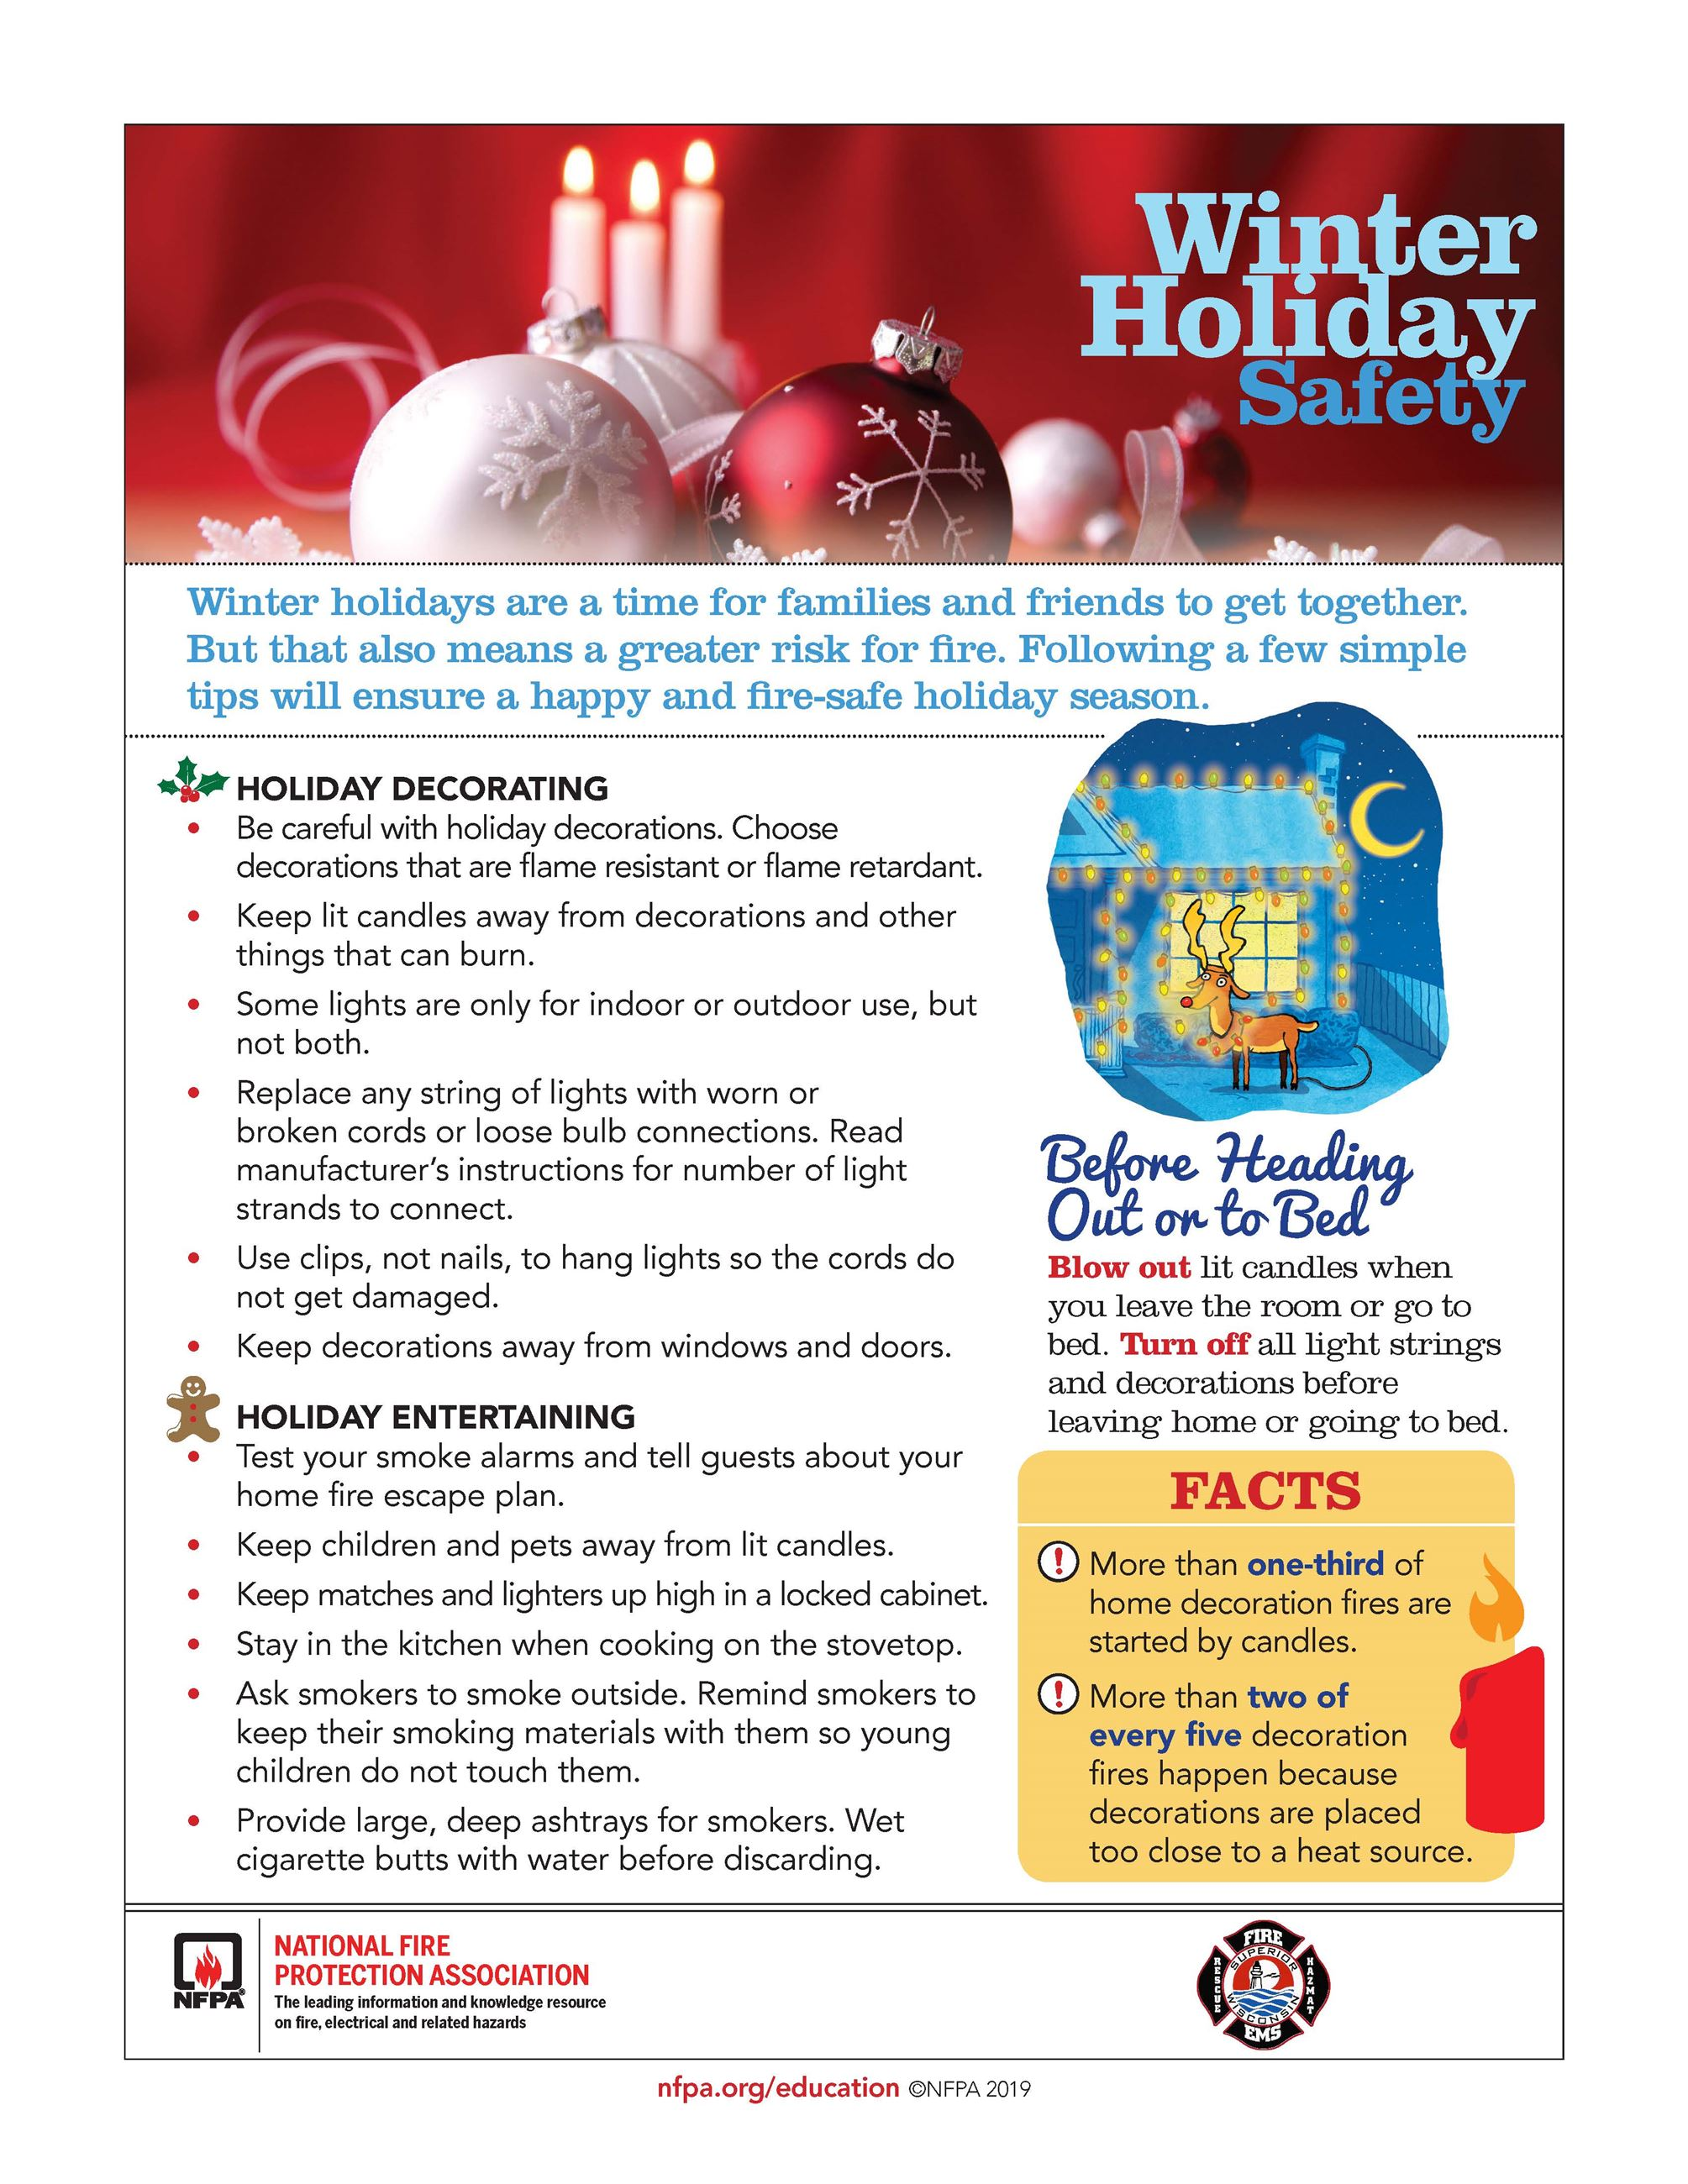 Winter Holiday Safety tip sheet